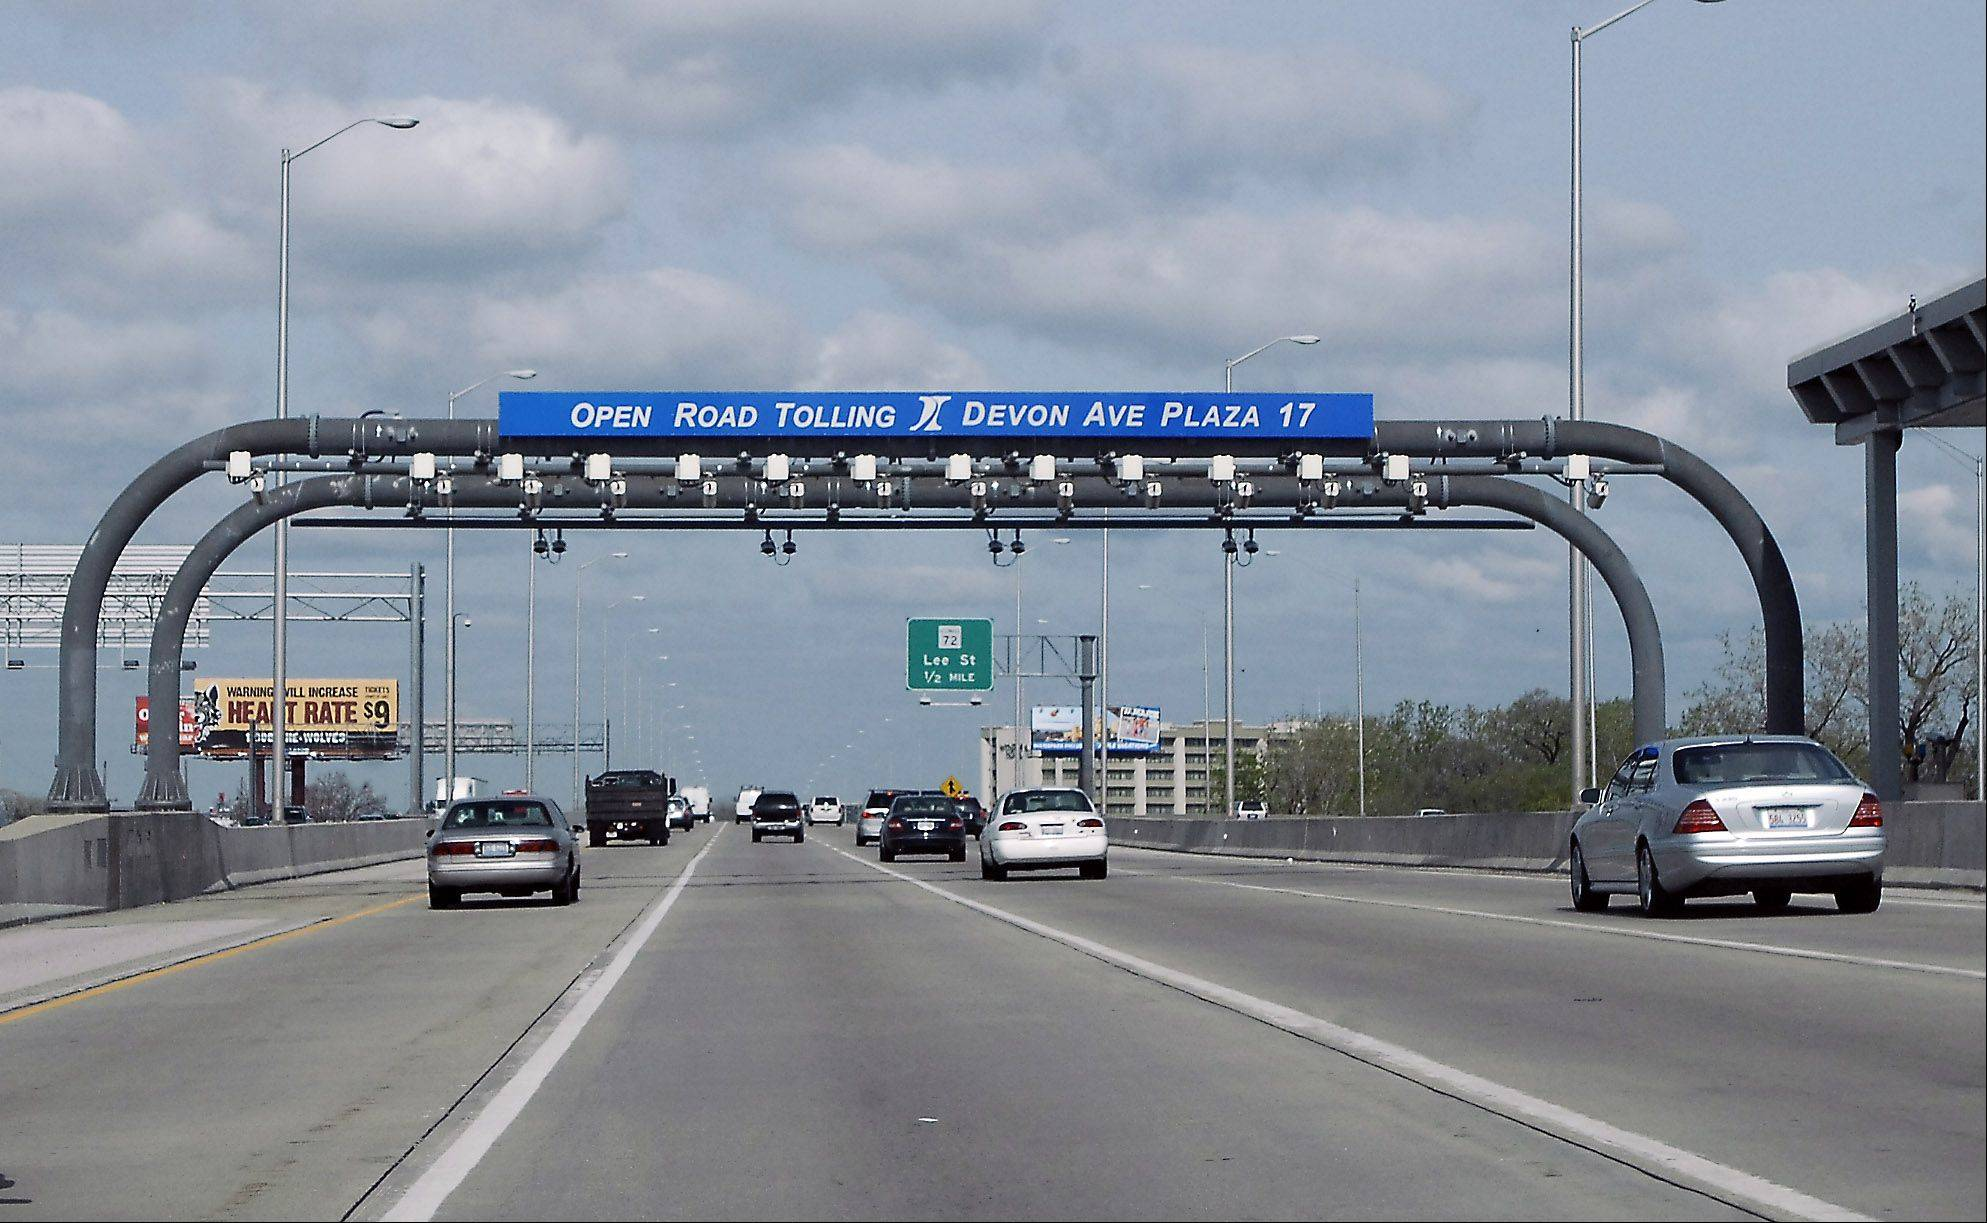 A bill sponsored by state Sen. Matt Murphy, a Republican from Palatine, would make it more difficult for tollway directors to authorize future toll